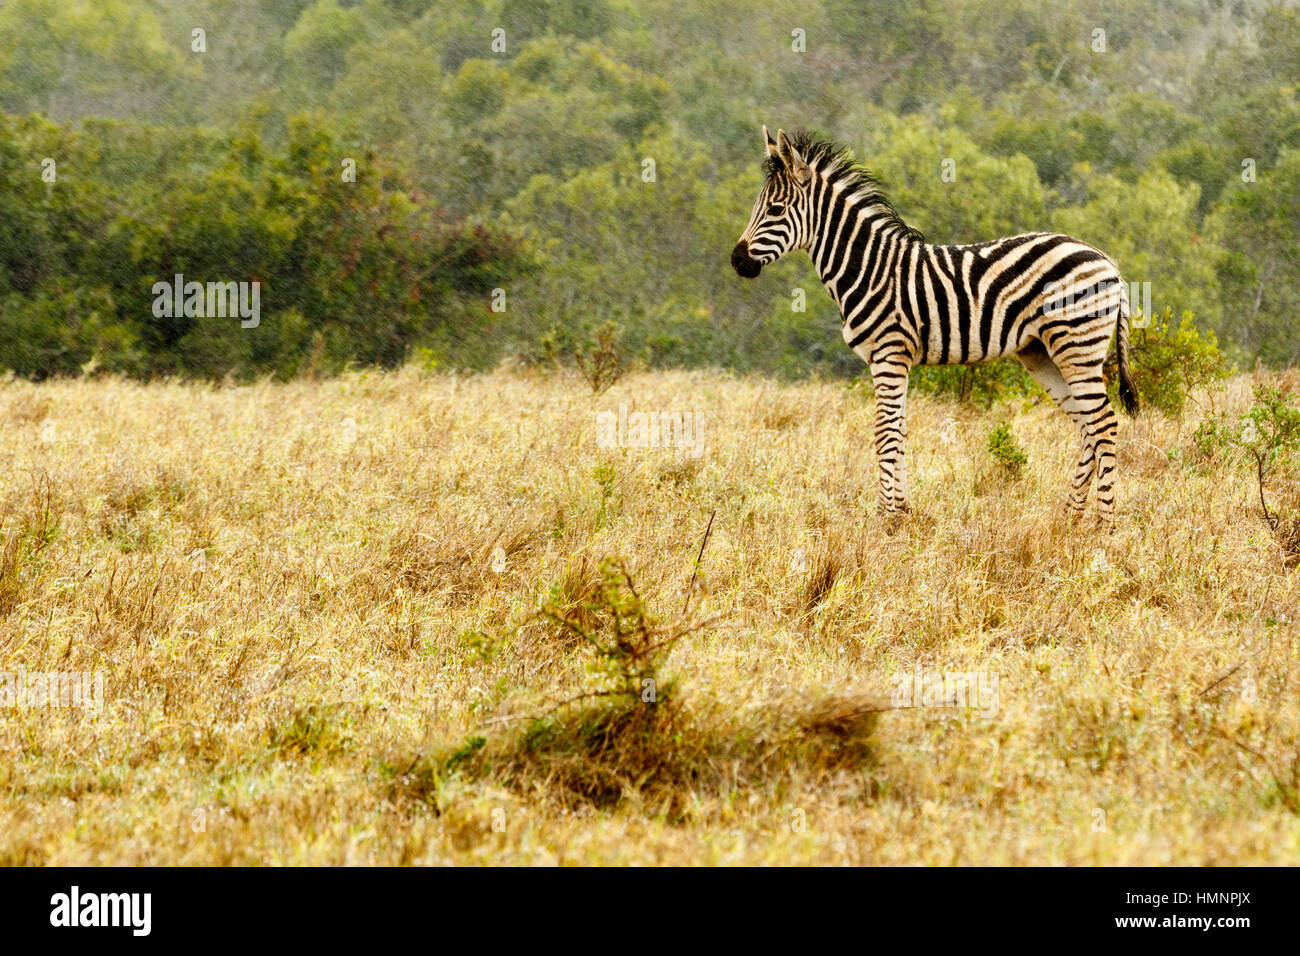 Baby Zebra standing in the field of grass. - Stock Image